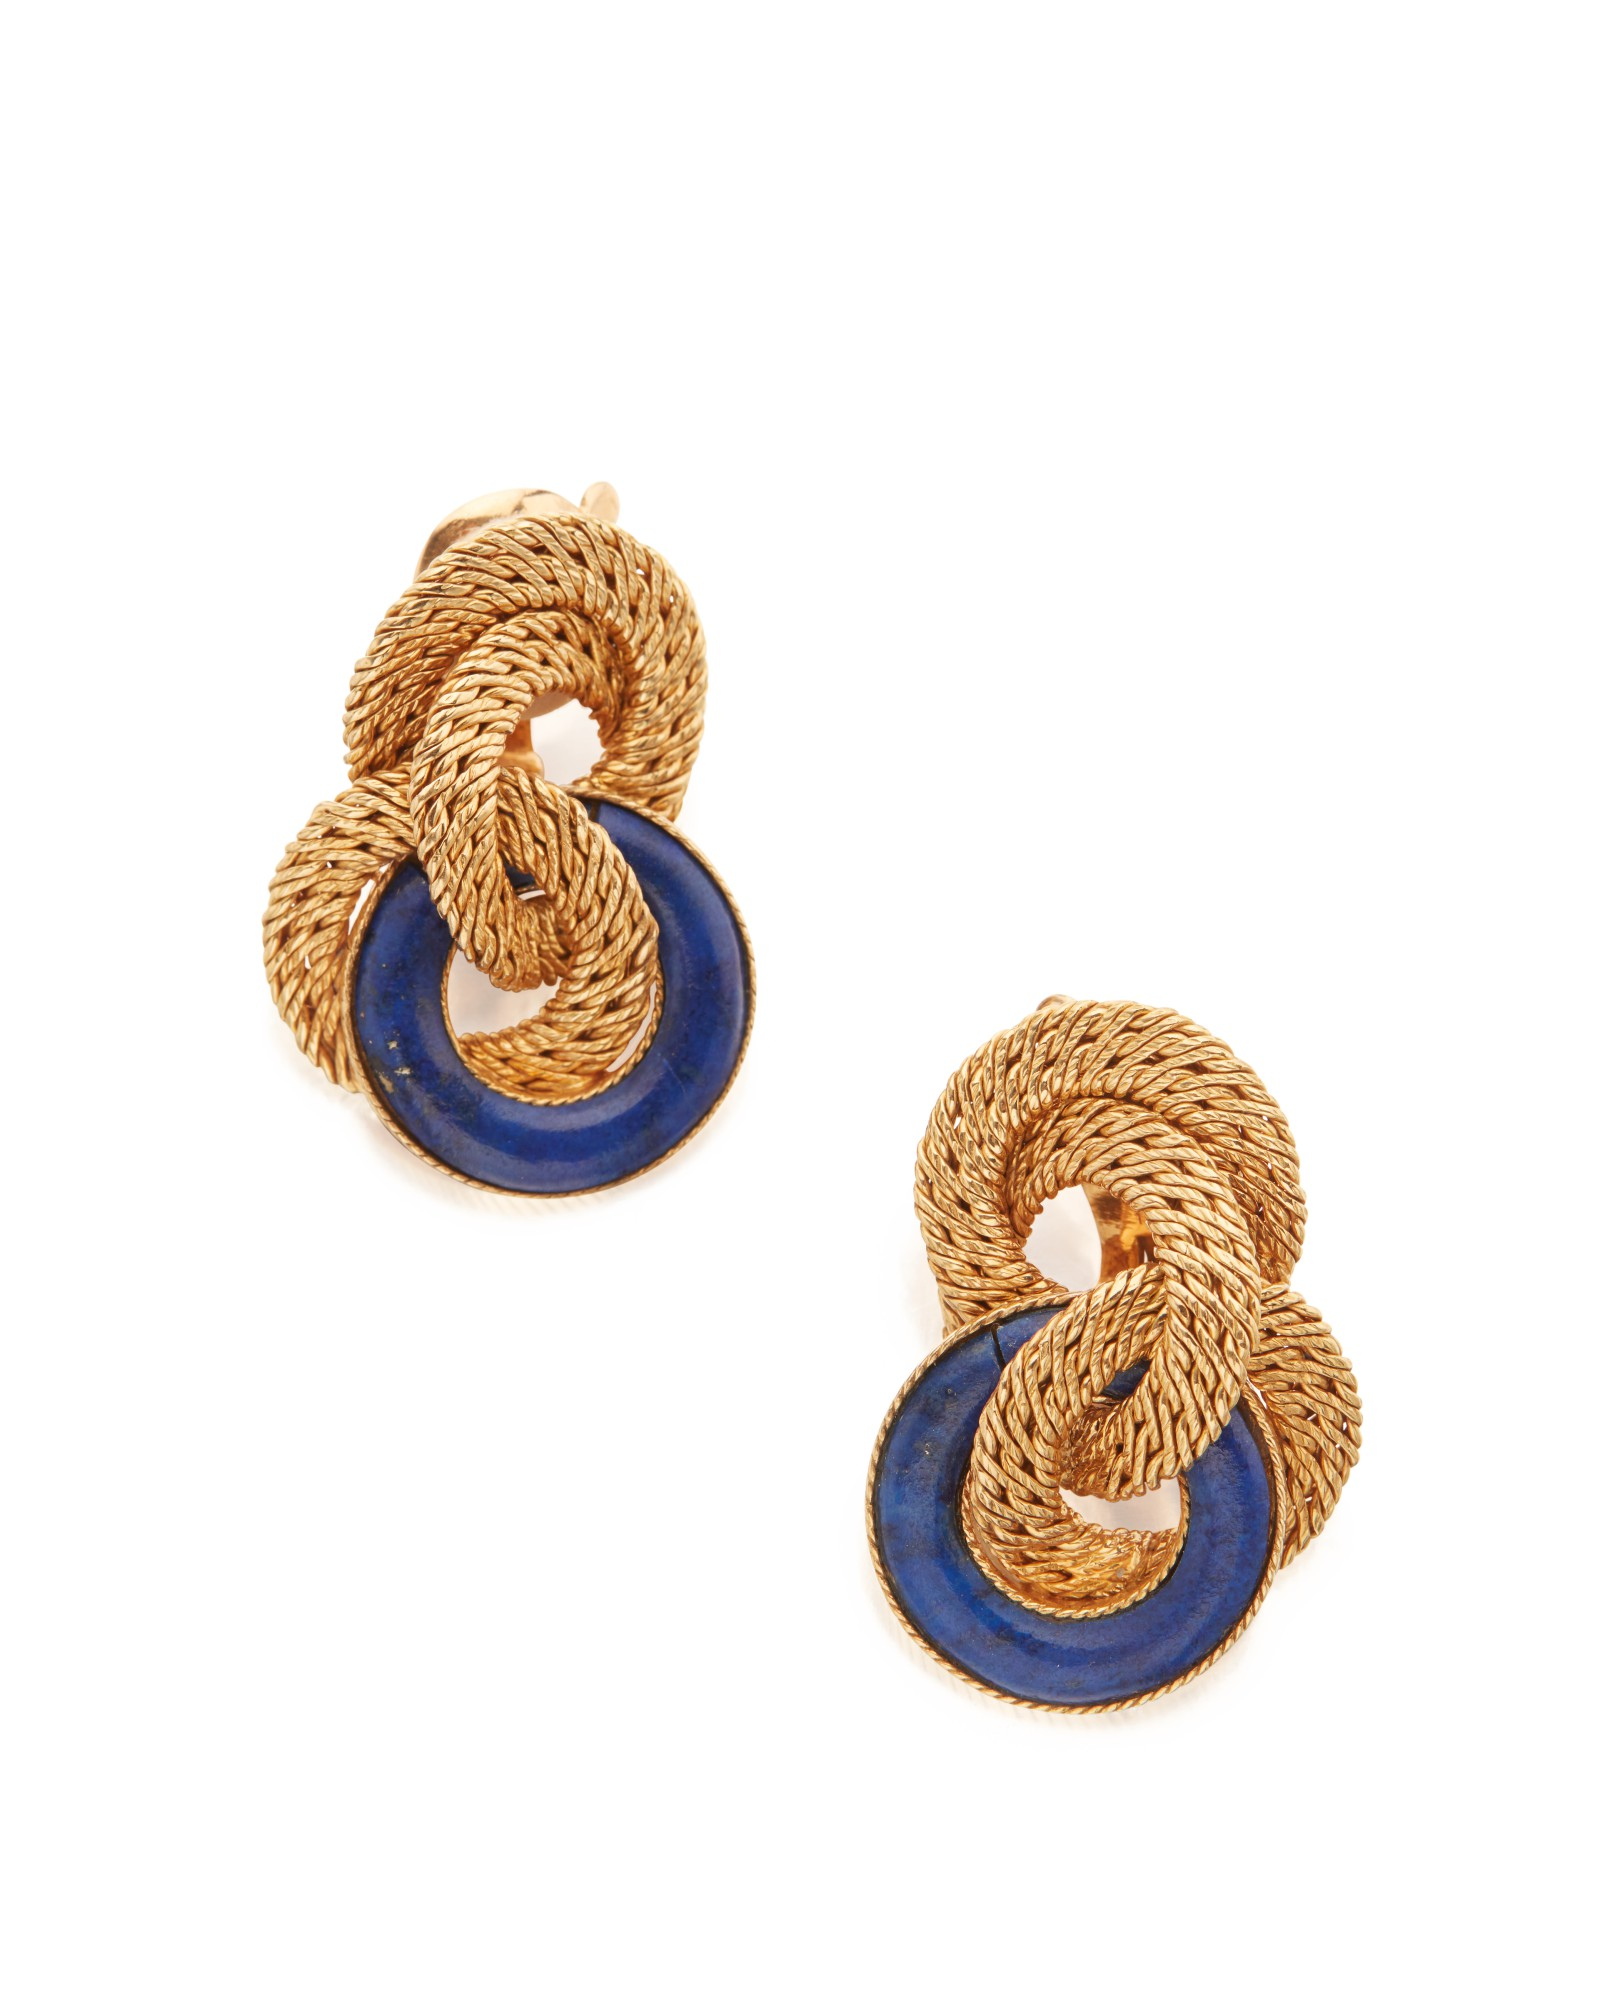 PAIR OF GOLD AND LAPIS LAZULI EARCLIPS, VAN CLEEF & ARPELS, FRANCE